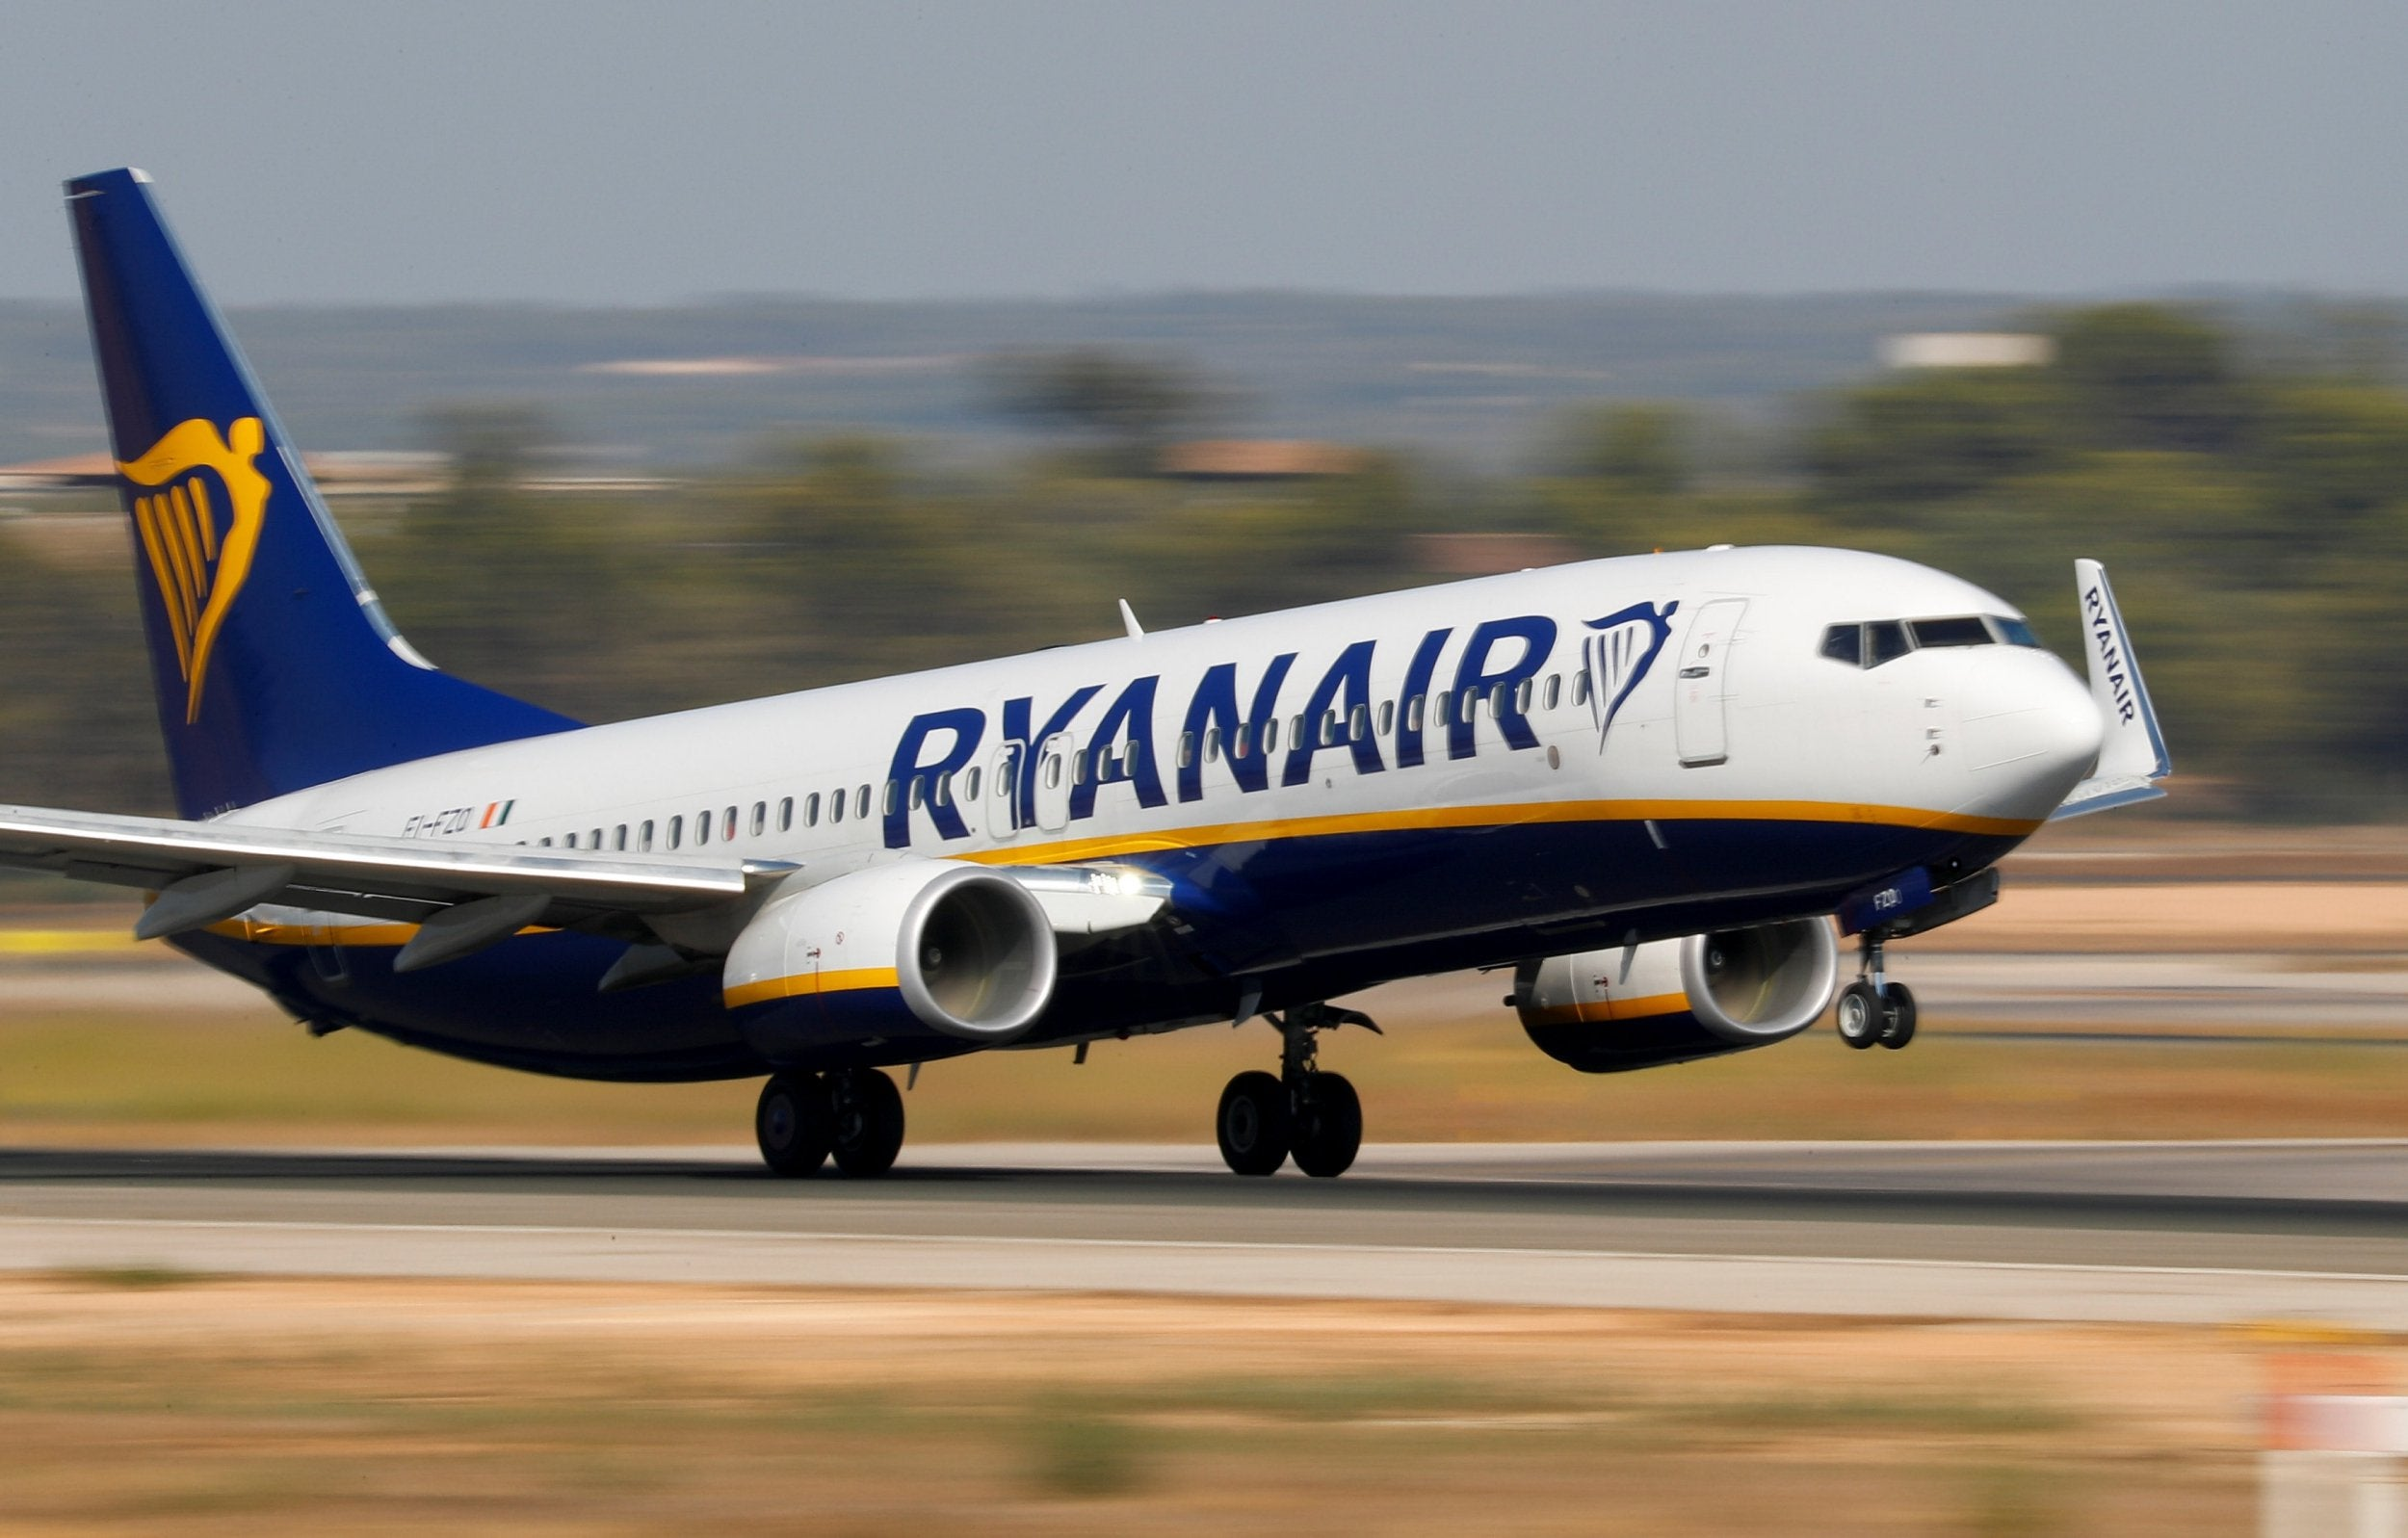 Ryanair Strike Latest Updates 70 000 Passengers Affected As Pilots In Germany Belgium Sweden And Ireland Begin 24 Hour Walkout The Independent The Independent